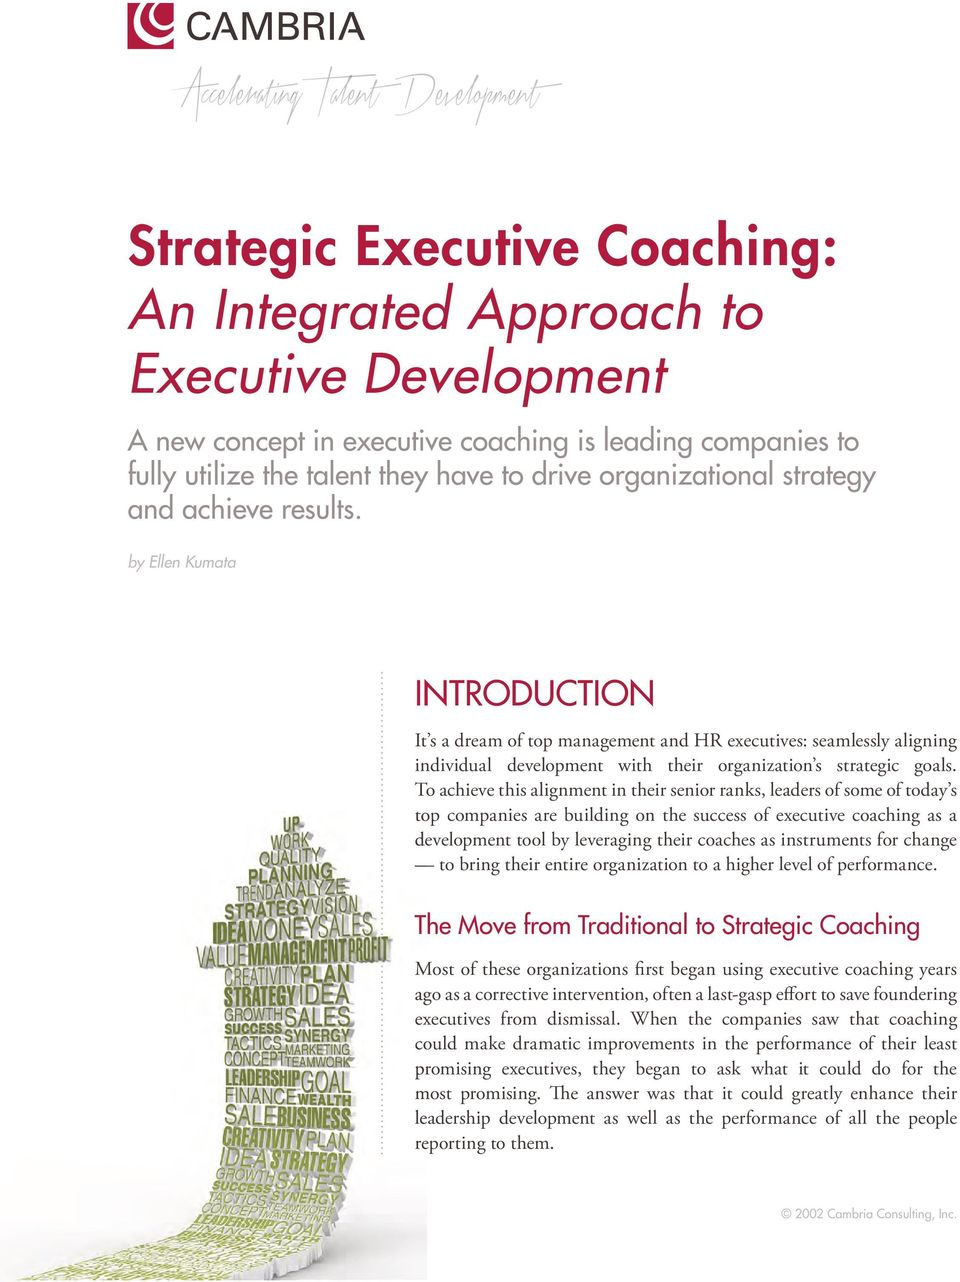 To achieve this alignment in their senior ranks, leaders of some of today s top companies are building on the success of executive coaching as a development tool by leveraging their coaches as